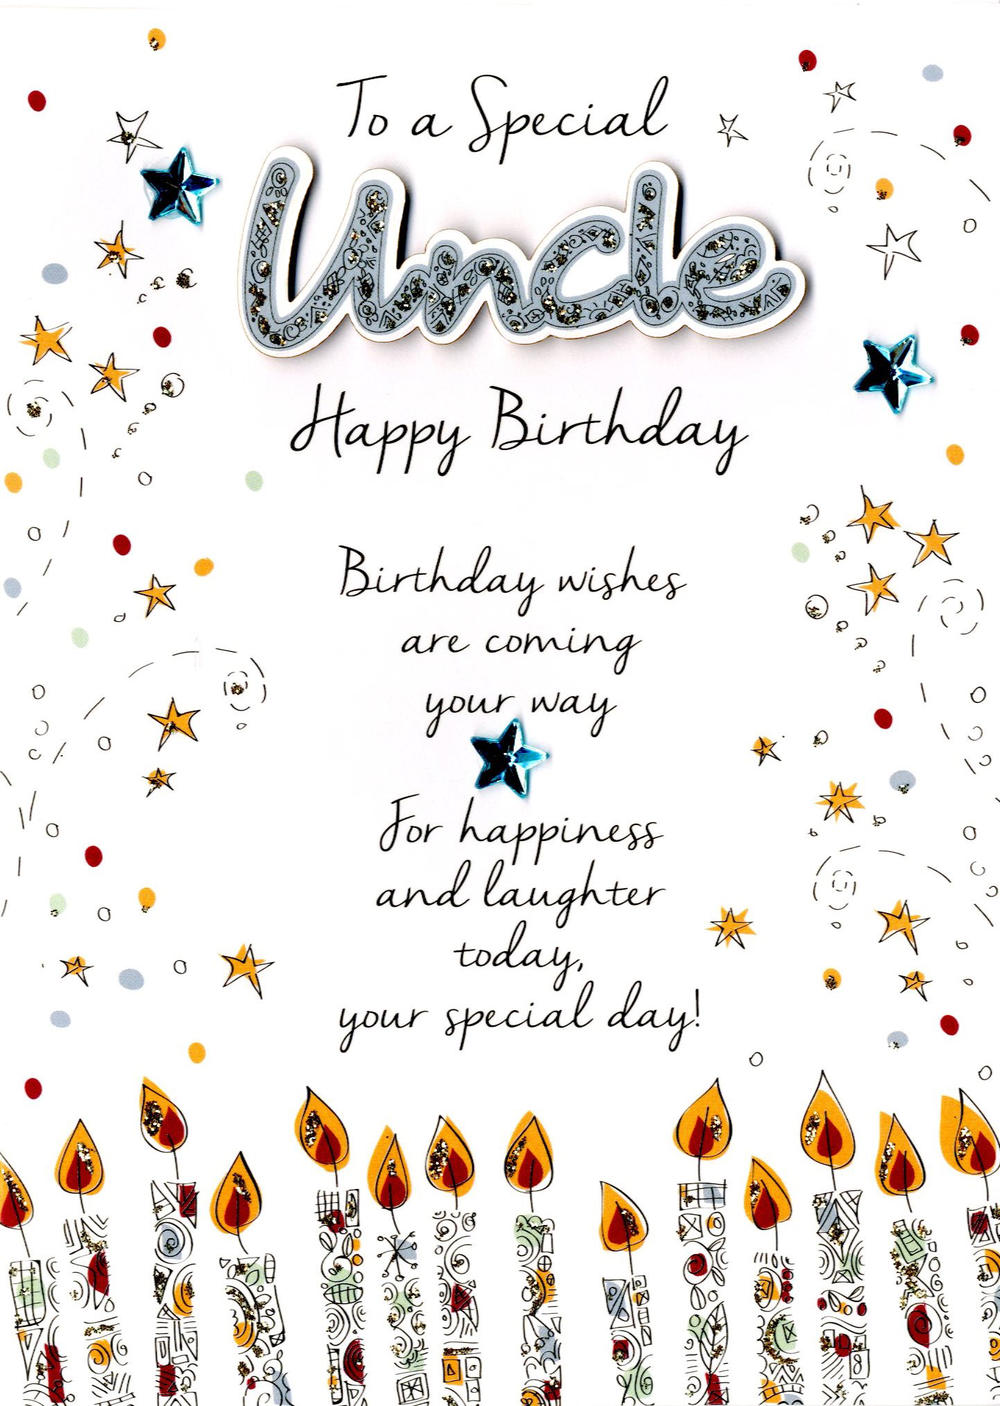 Special uncle birthday greeting card cards love kates special uncle birthday greeting card bookmarktalkfo Images